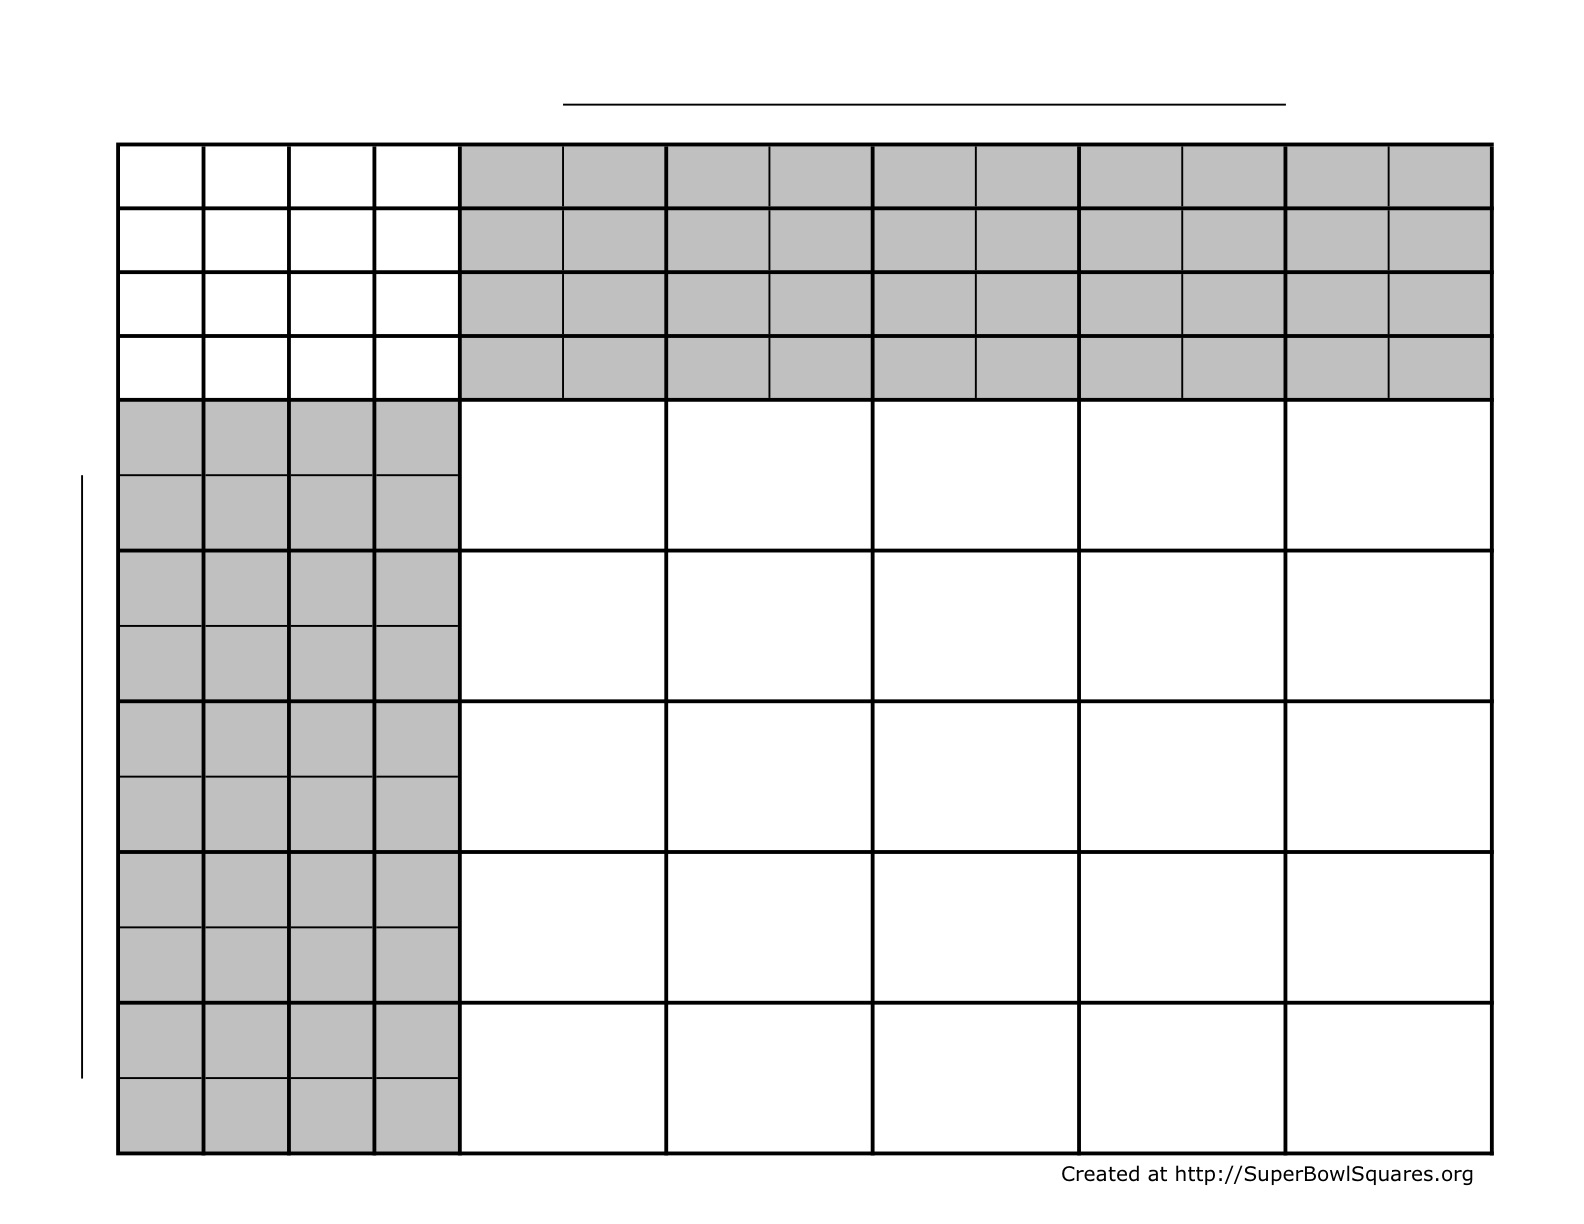 picture about Printable Superbowl Pool Squares titled Printable Soccer Squares Sheets